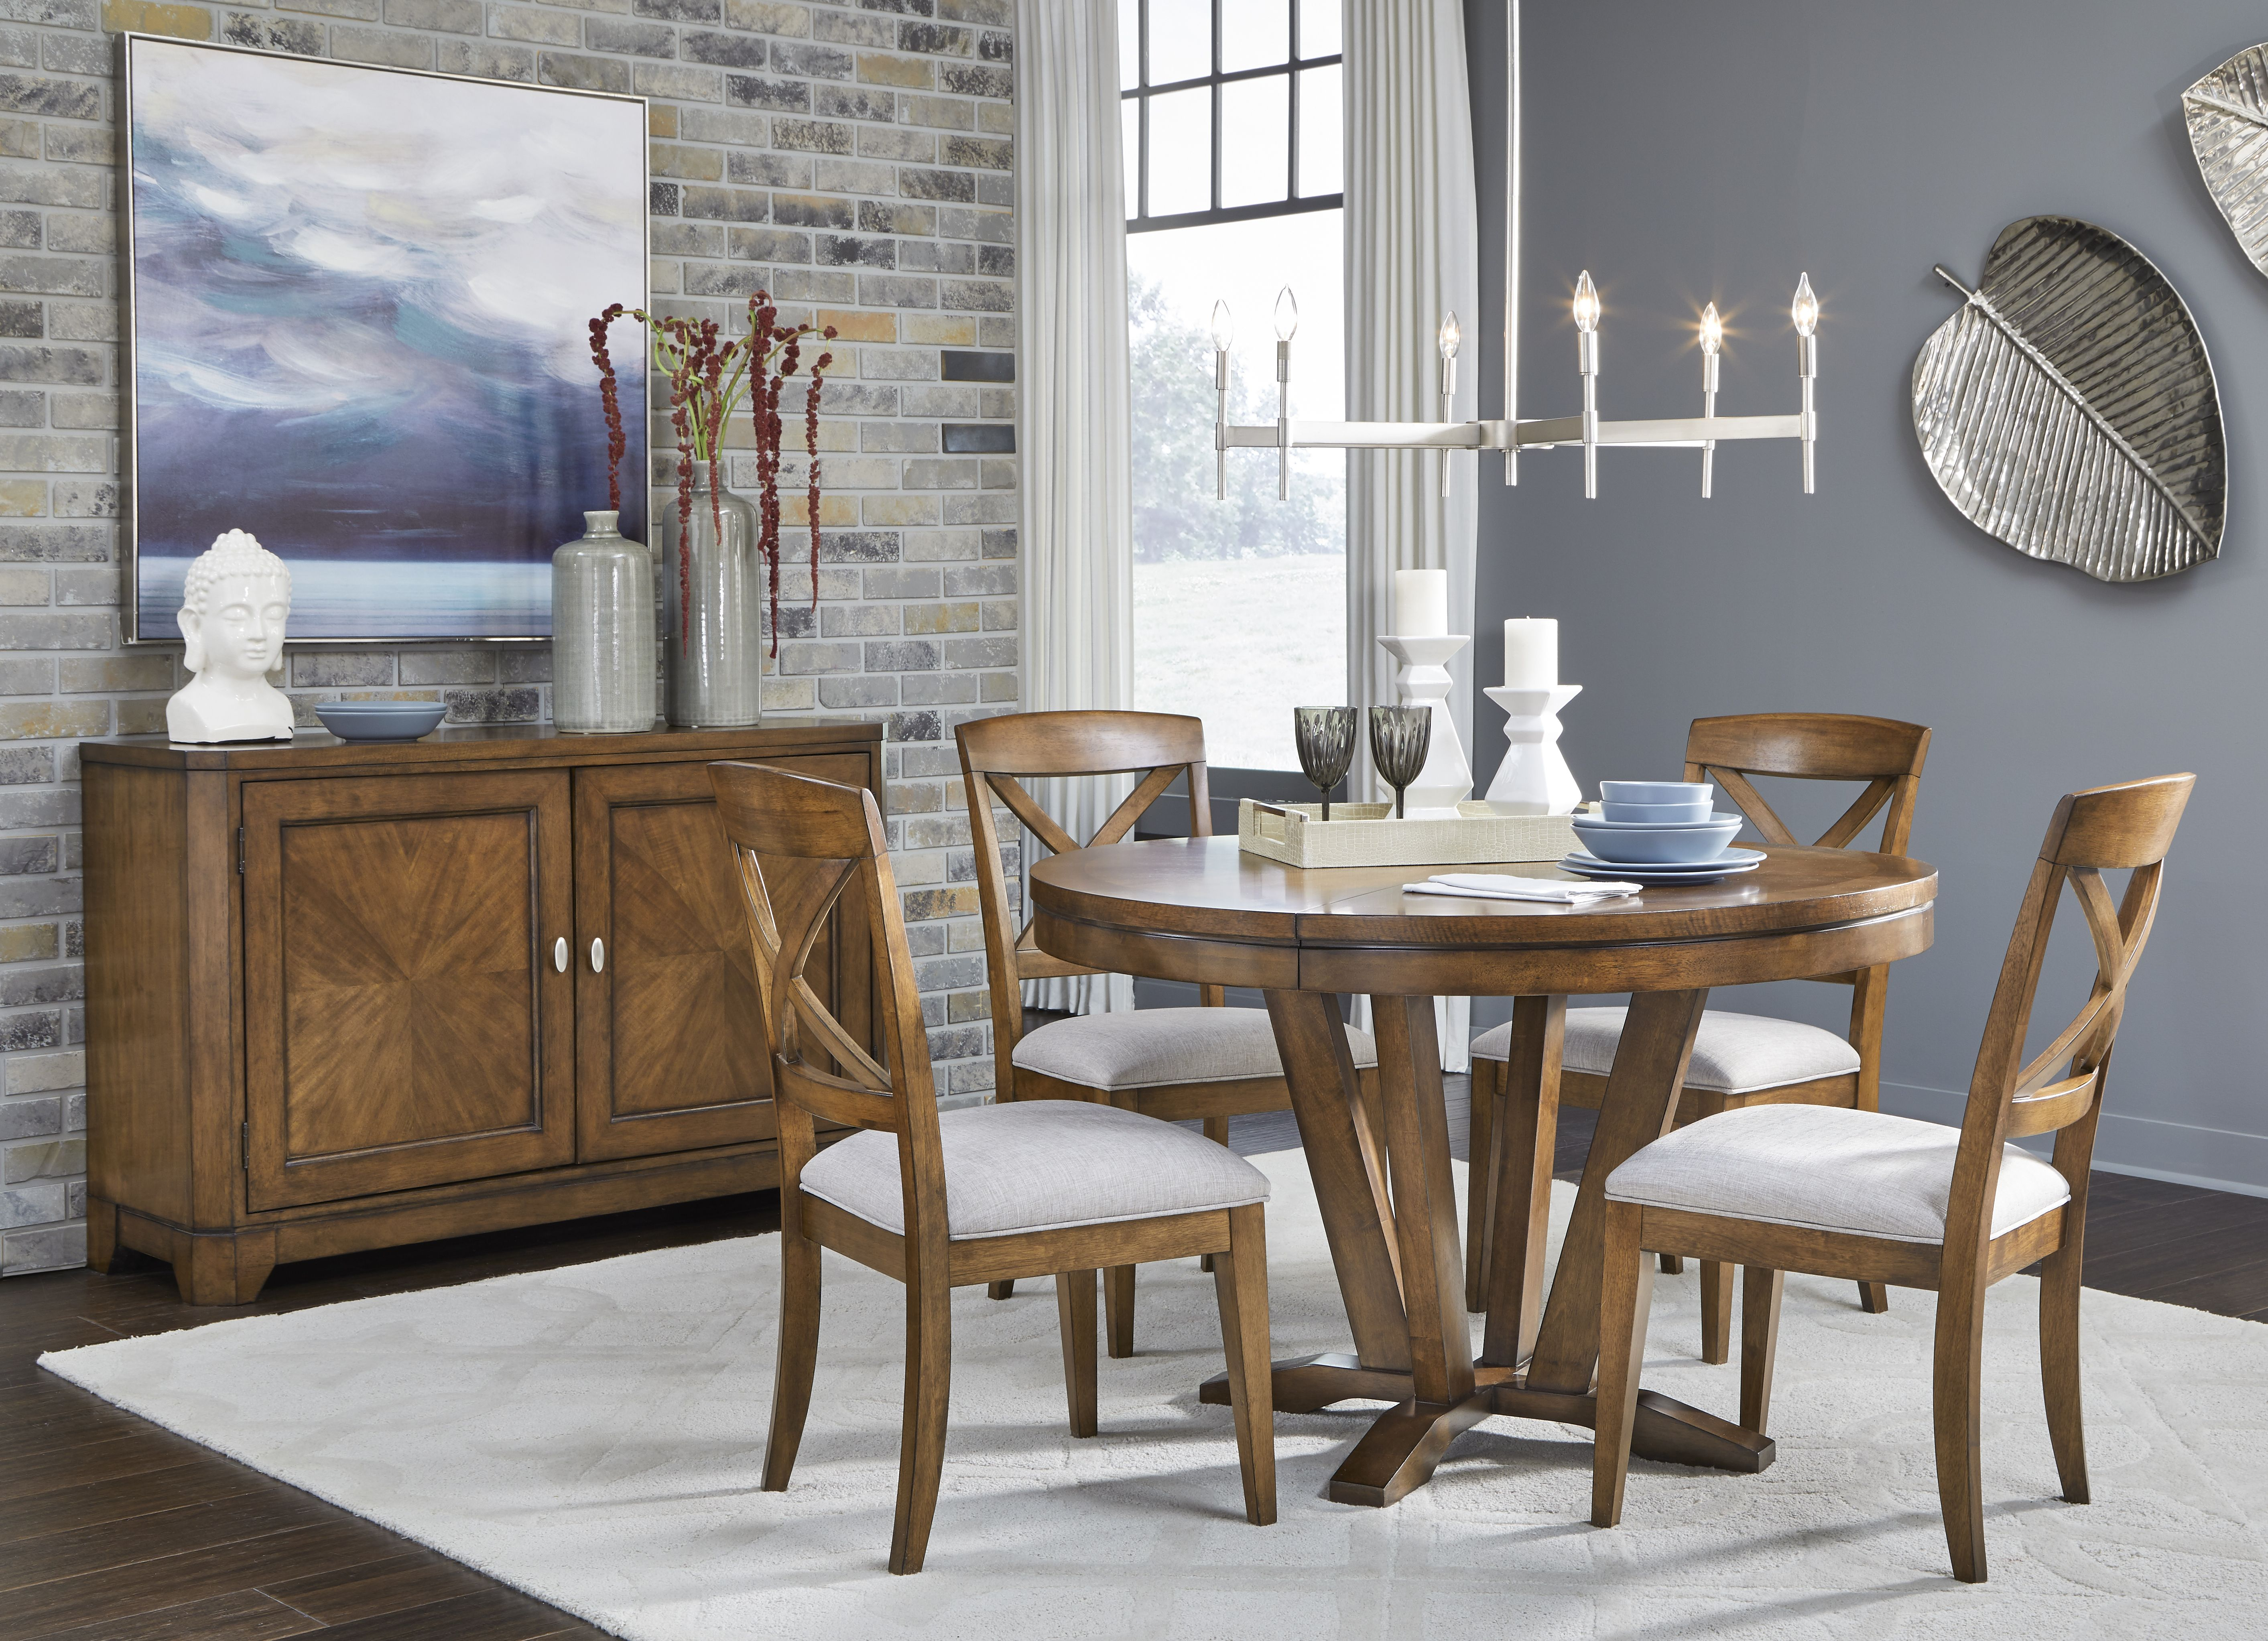 The Highland Dining Collection Legacy Classic Furniture Highland Legacyclassic Diningr Round Dining Room Sets Round Dining Room Legacy Classic Furniture Dining rooms legacy classic